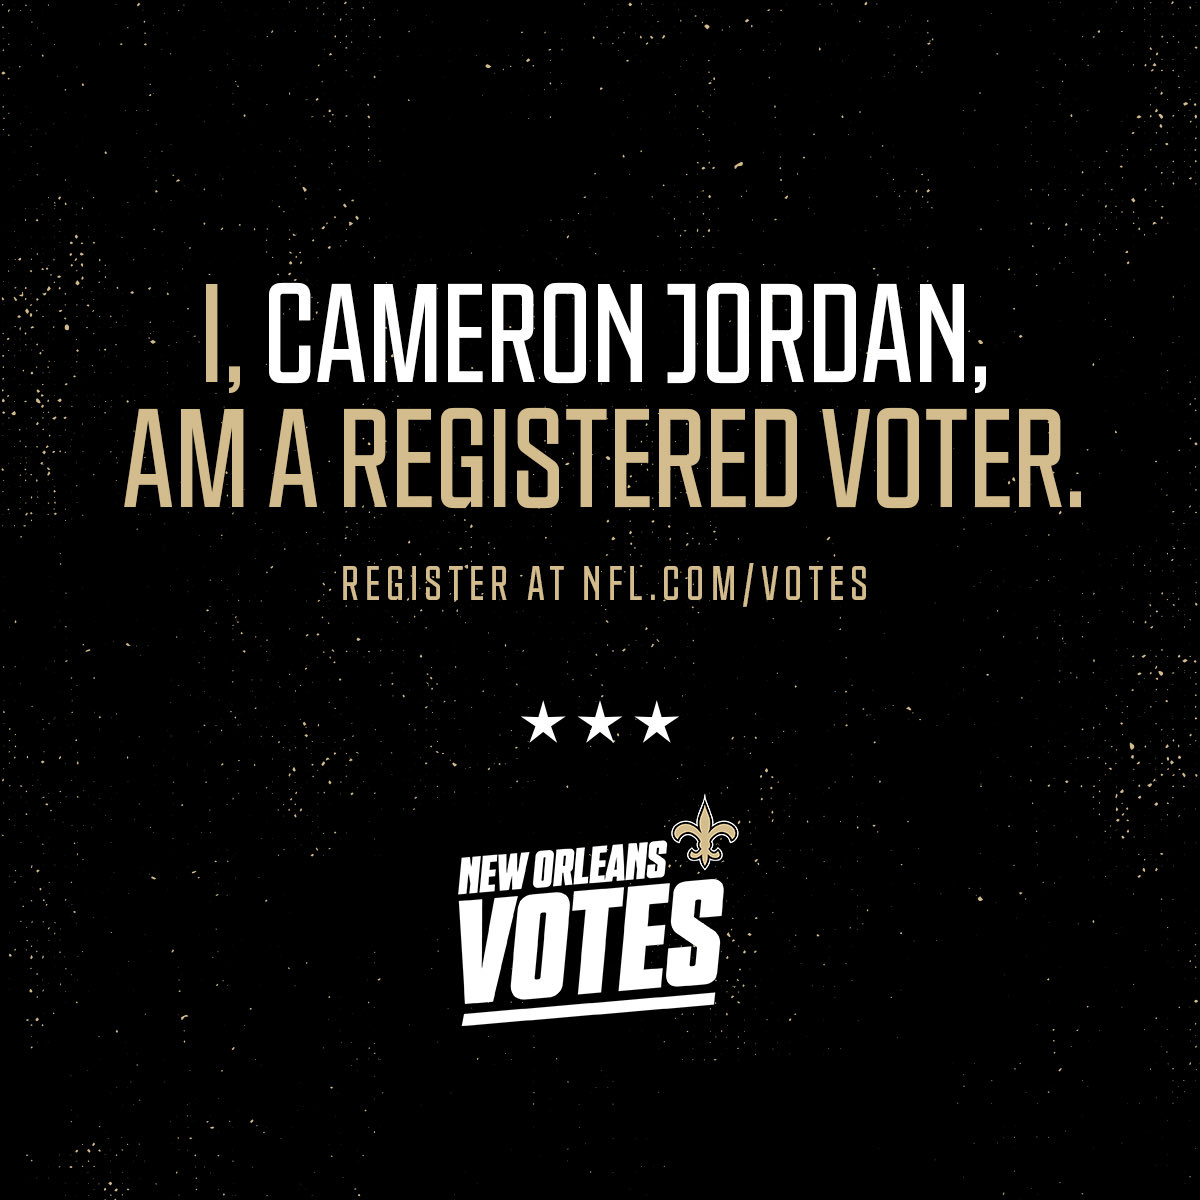 Visit nfl.com/votes to register to vote and more! #NFLVotes